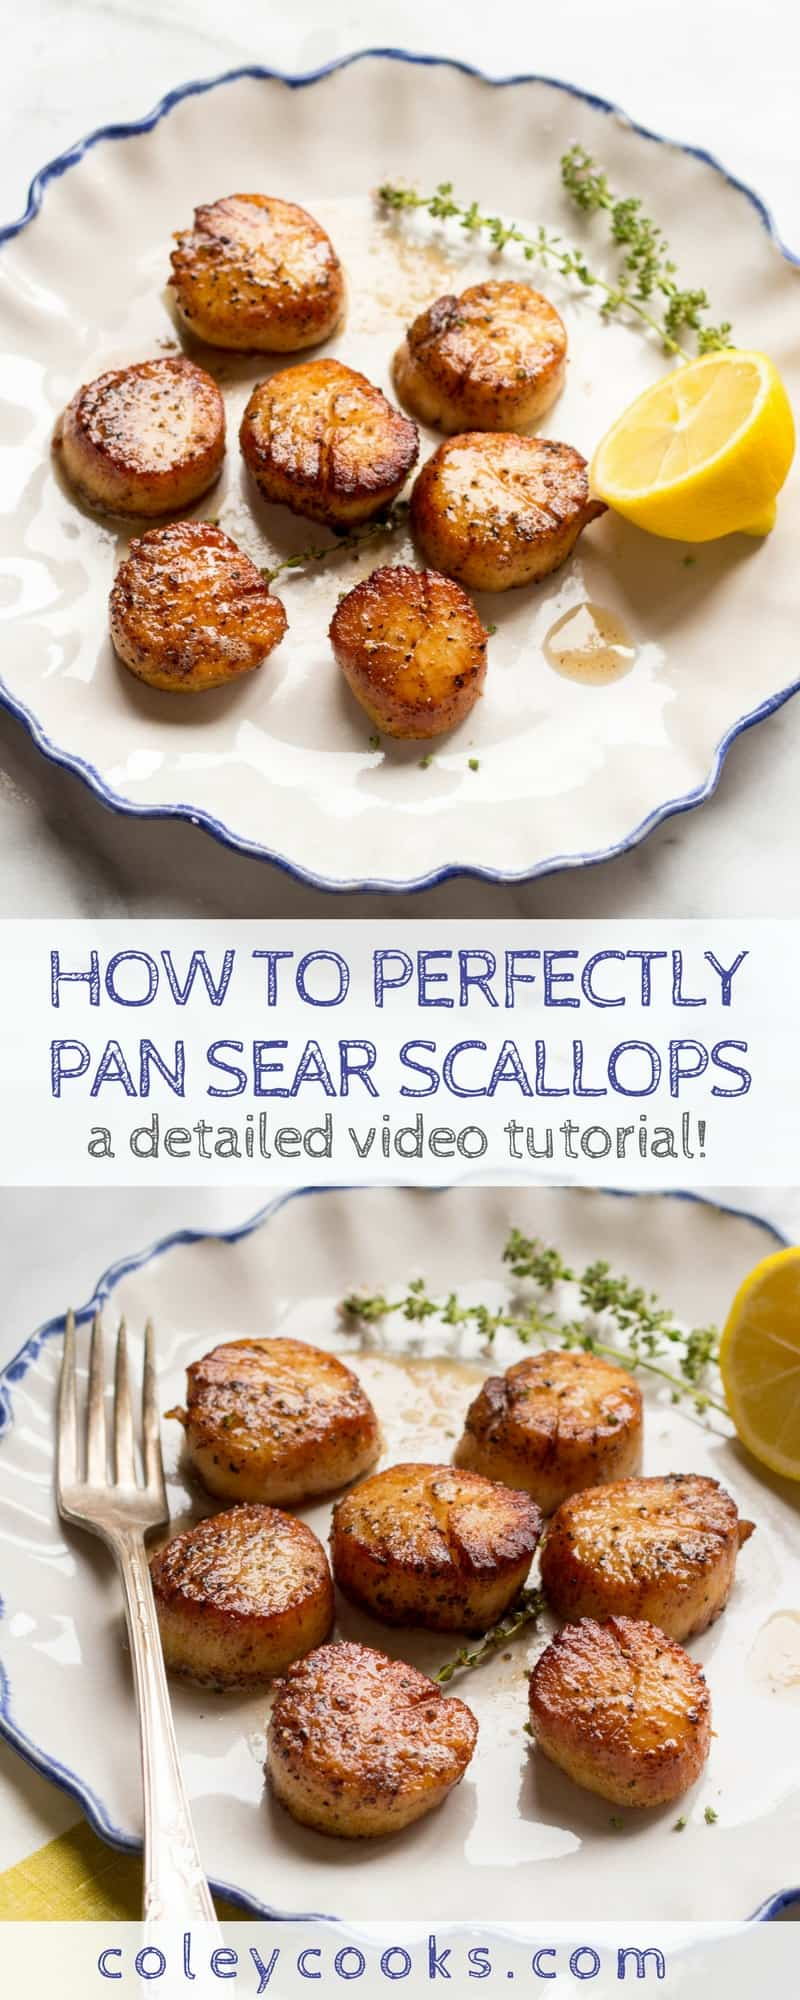 PAN SEARED SCALLOPS | Easy video tutorial on how to perfectly pan sear scallops! This simple technique produces scallops that are browned and caramelized on the outside, tender and perfectly cooked in the middle. #paleo #seafood #glutenfree | ColeyCooks.com